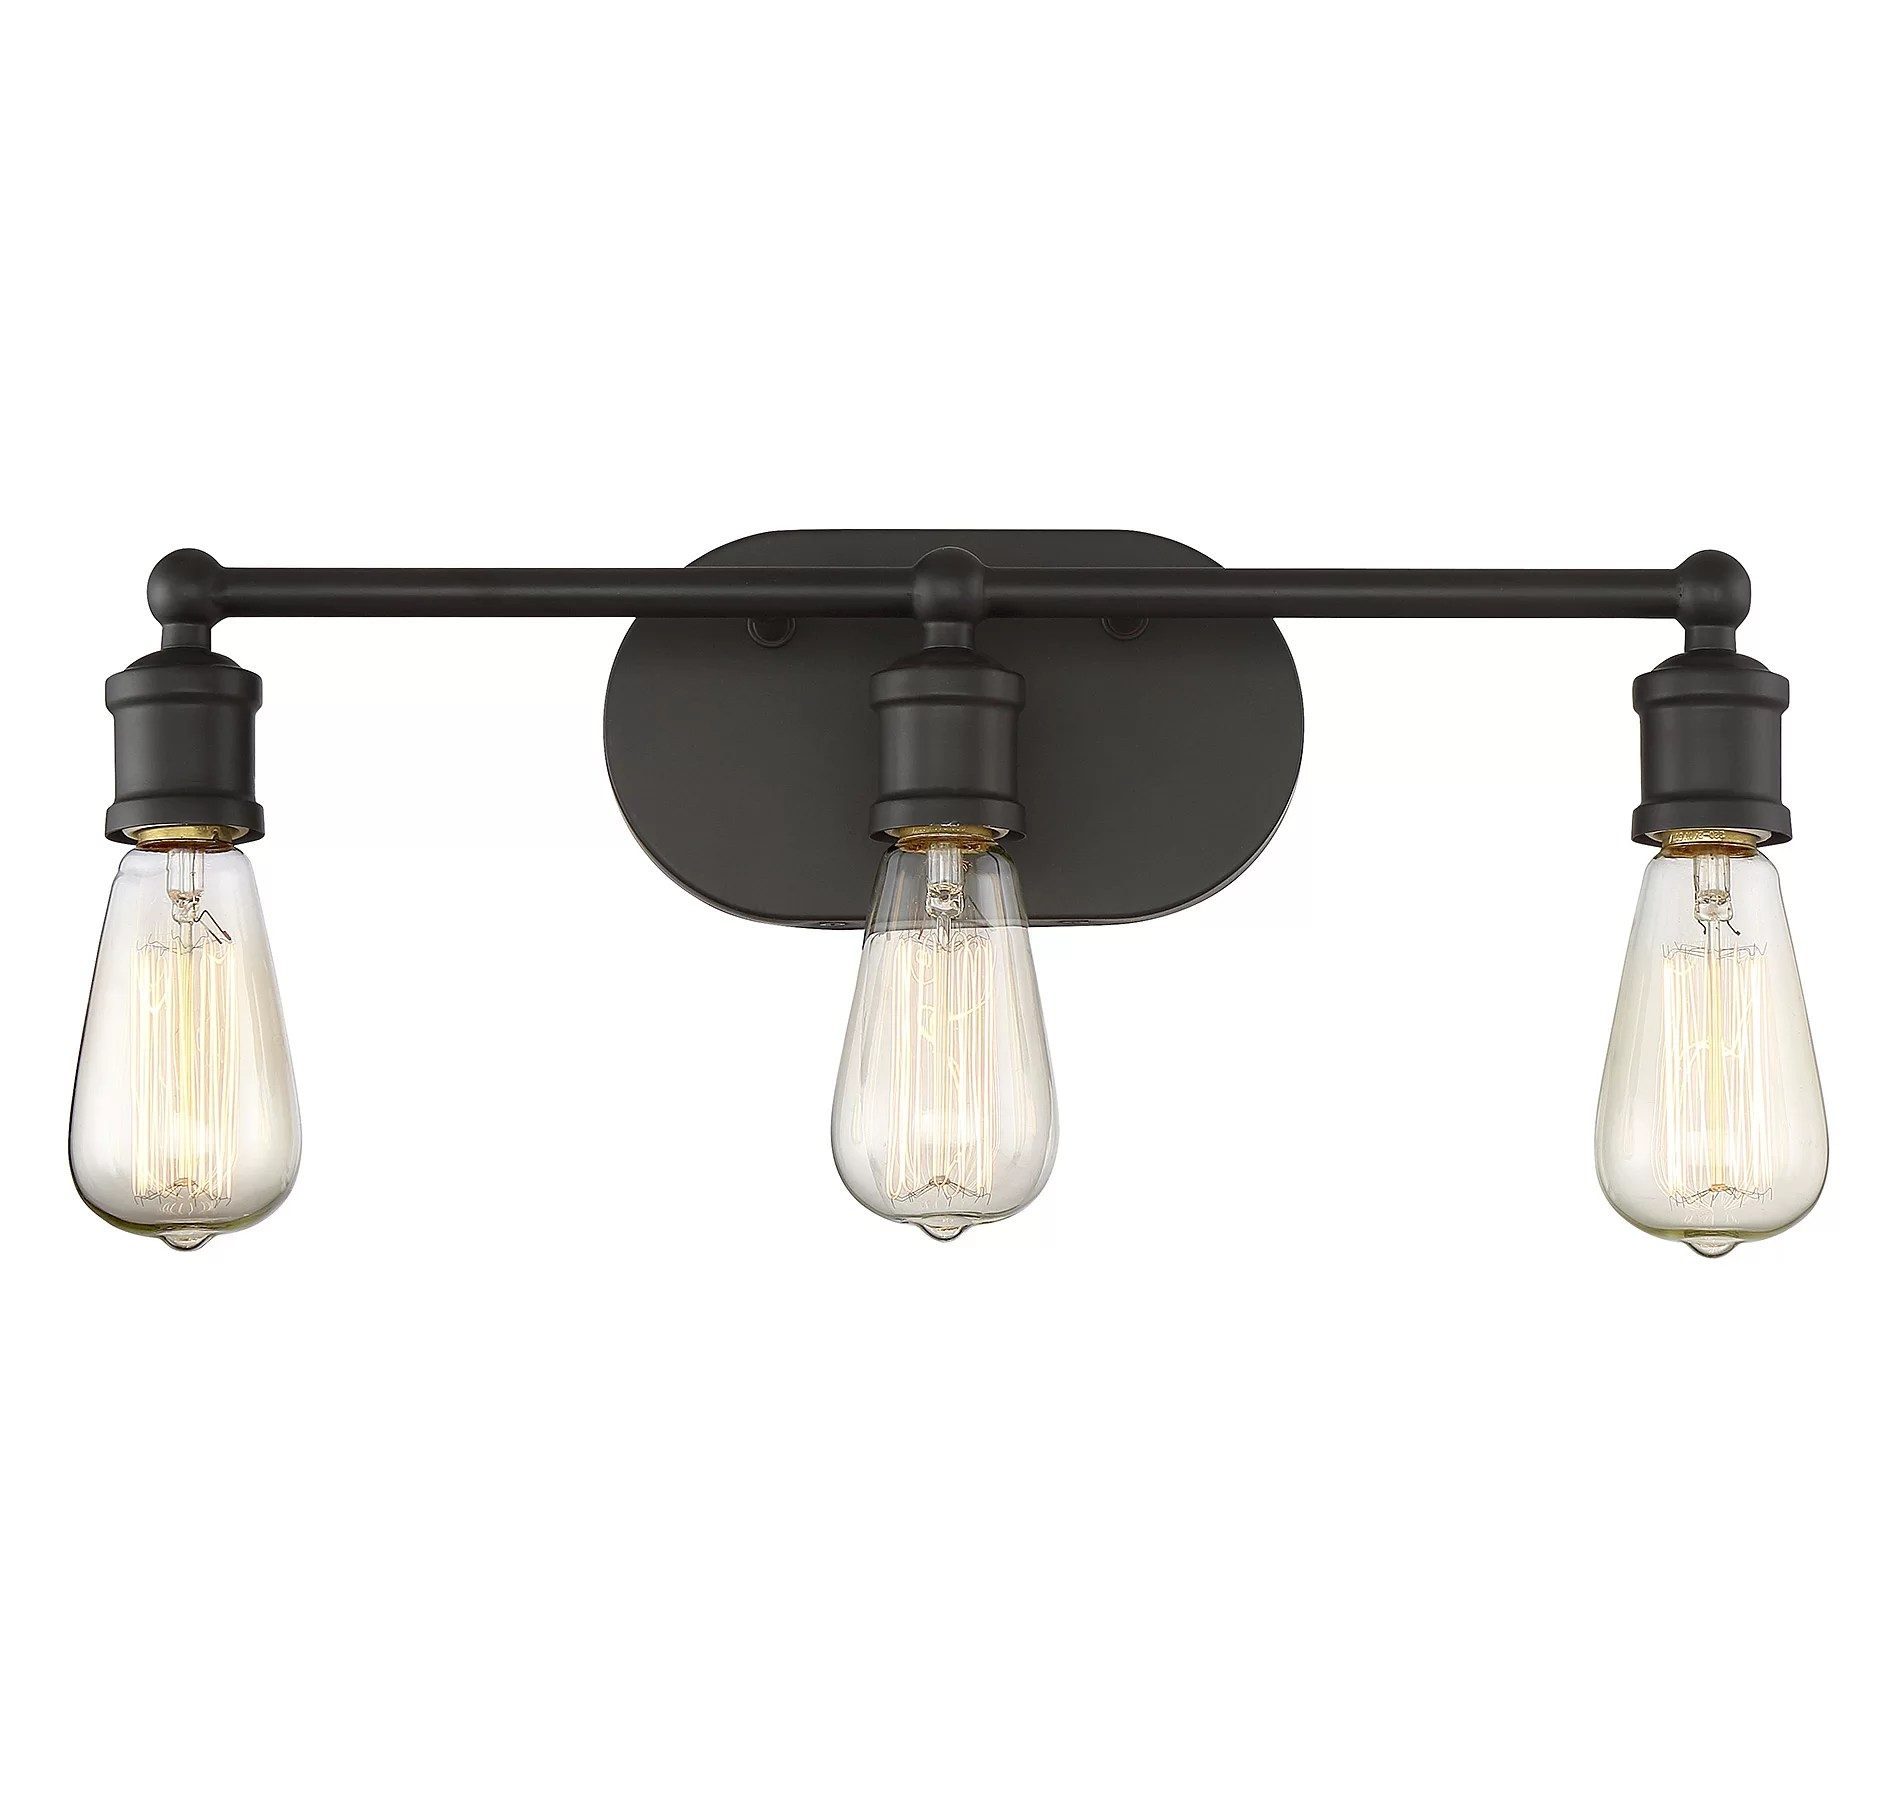 Modern Farmhouse Track Lighting Laurel Foundry Modern Farmhouse Agave 3 Light Vanity Light Fixture